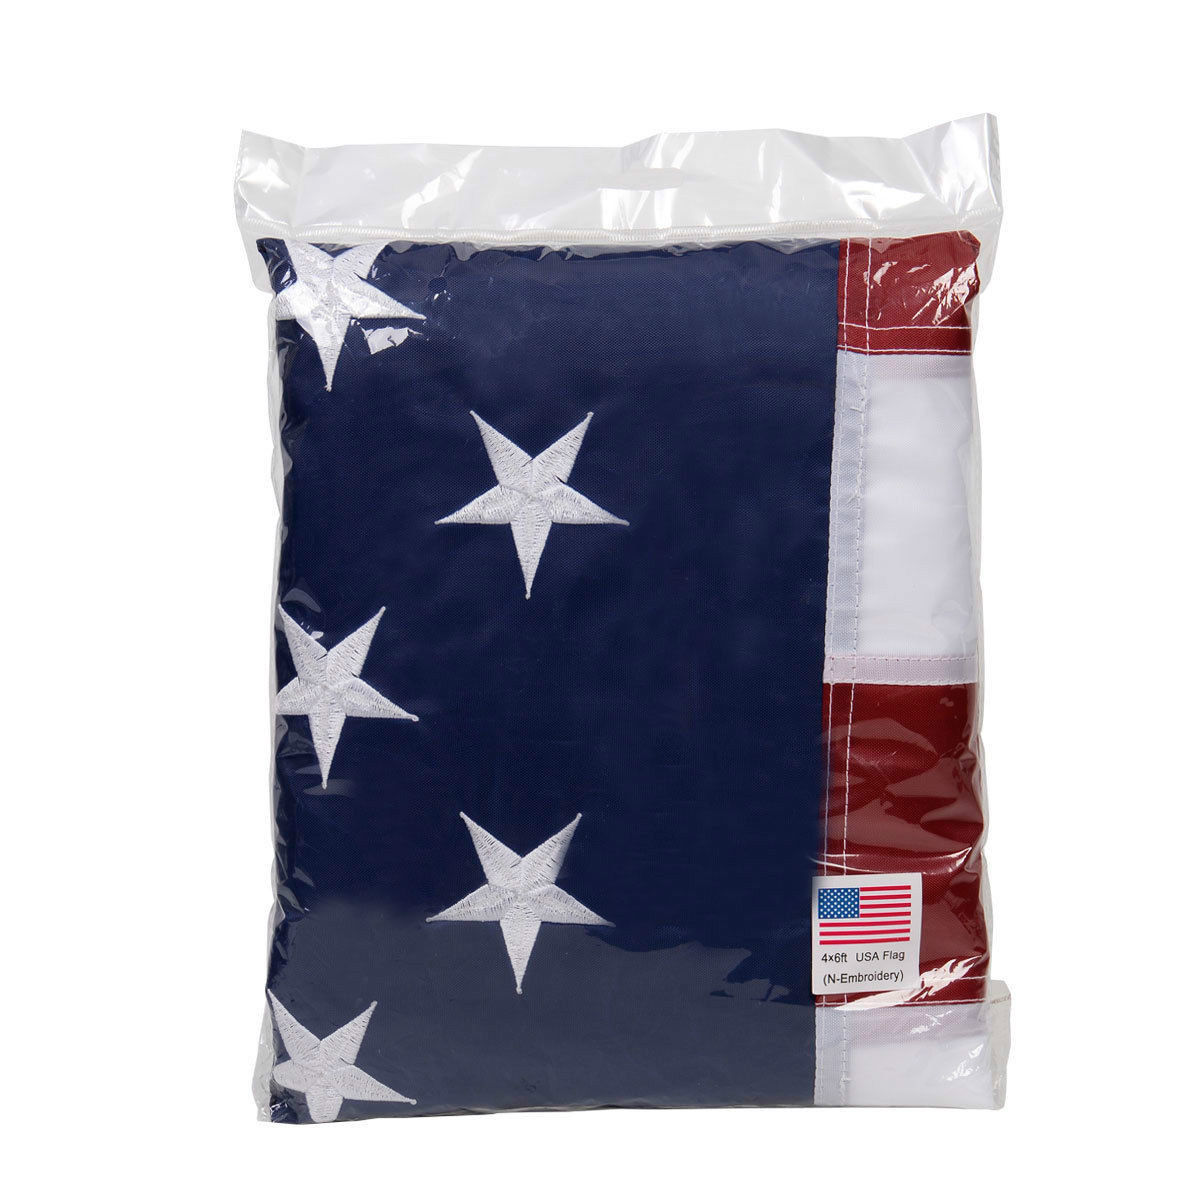 4' x 6' US American Embroidered Flag